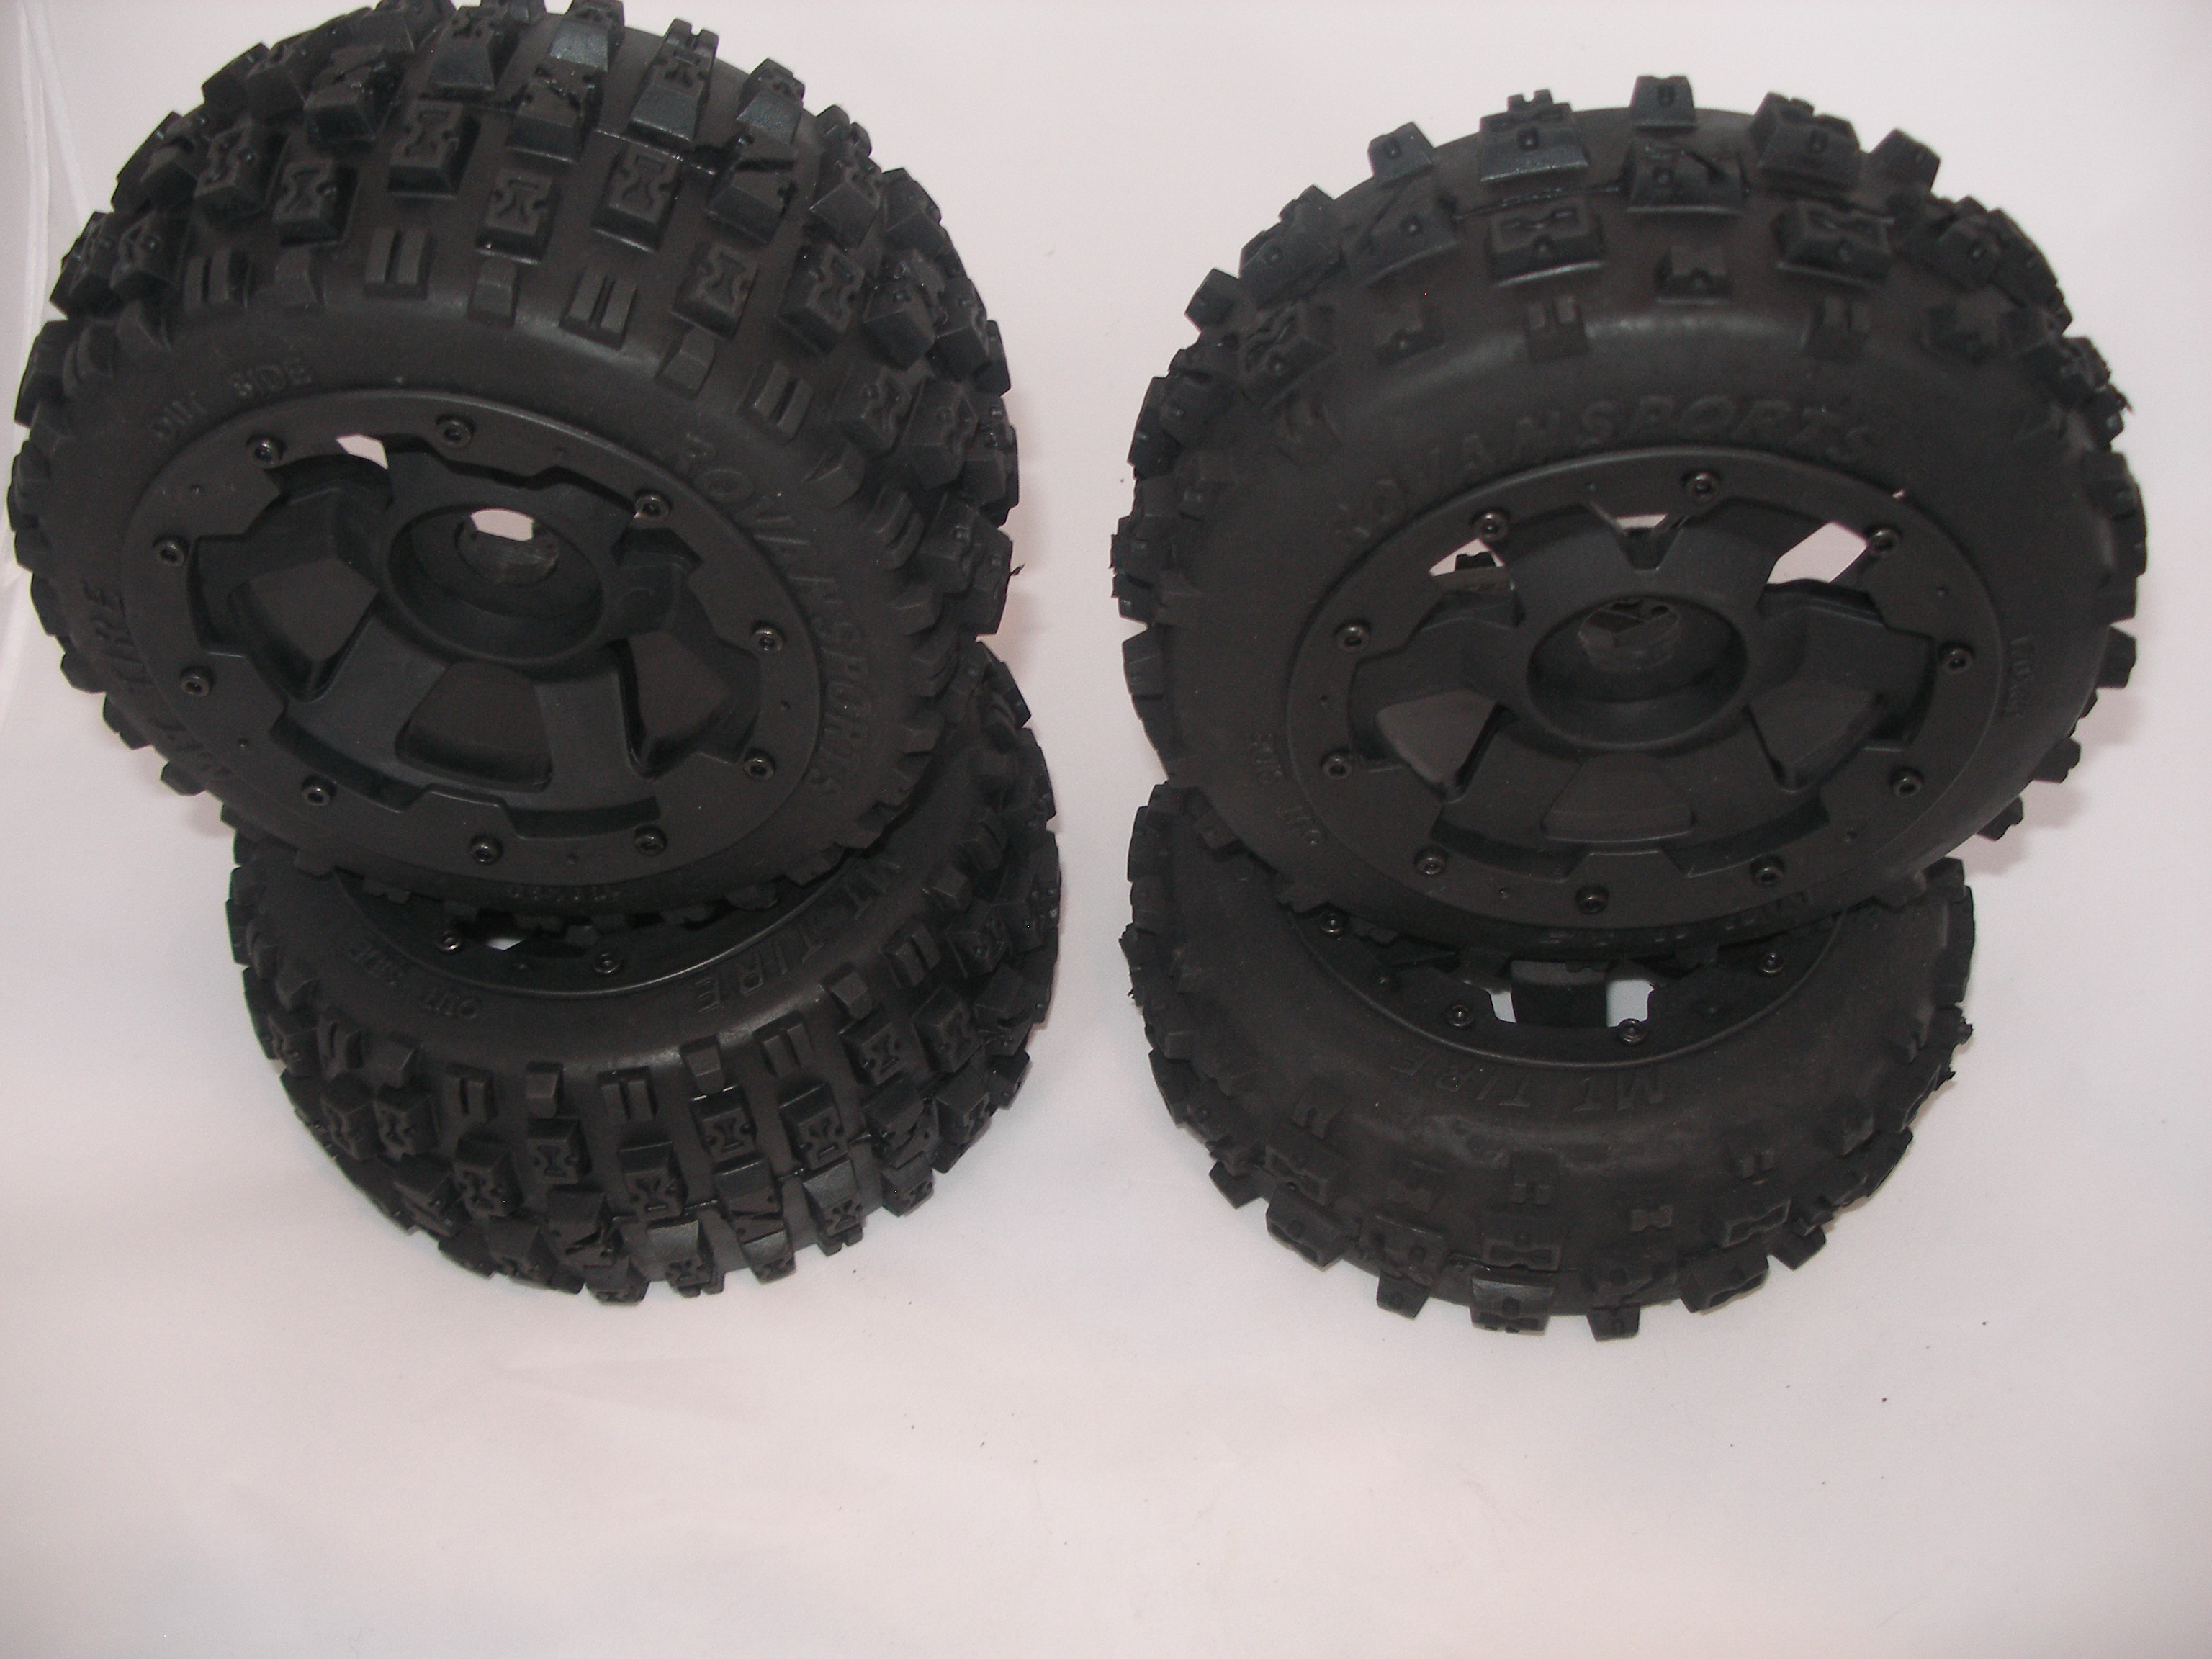 Baja Buggy Knobby Tires on rims (Bowties) (set of 4)